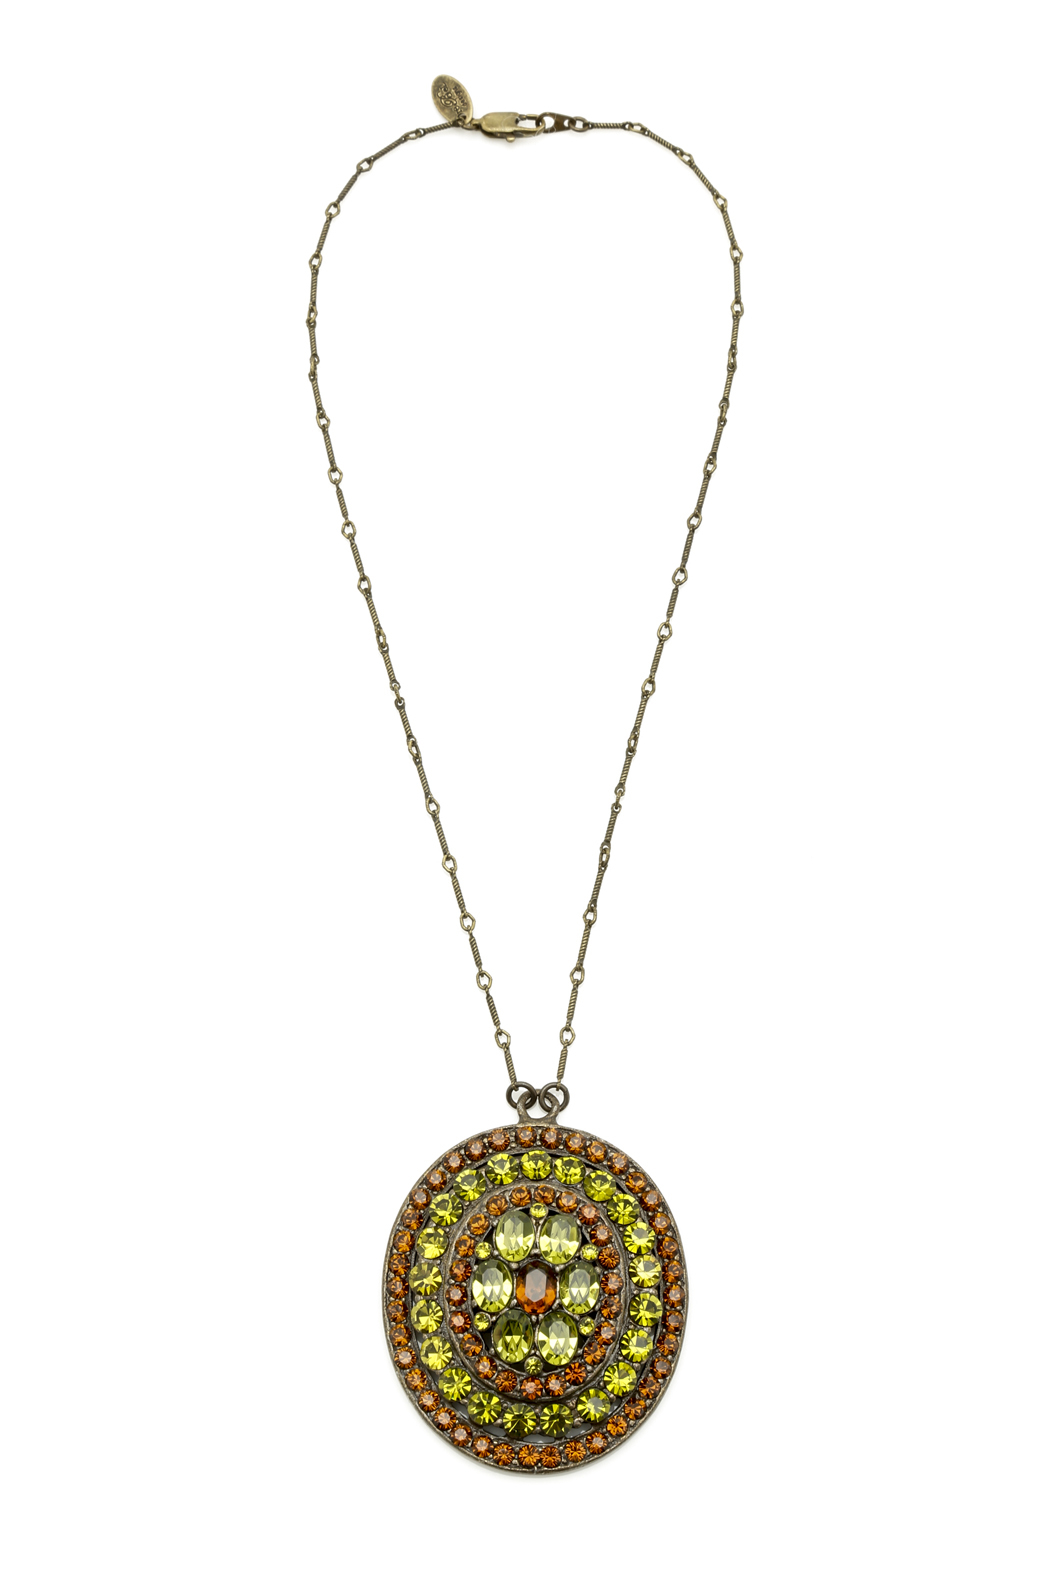 Rebel designs swarovski crystal necklace from ohio by for Rebel designs jewelry sale